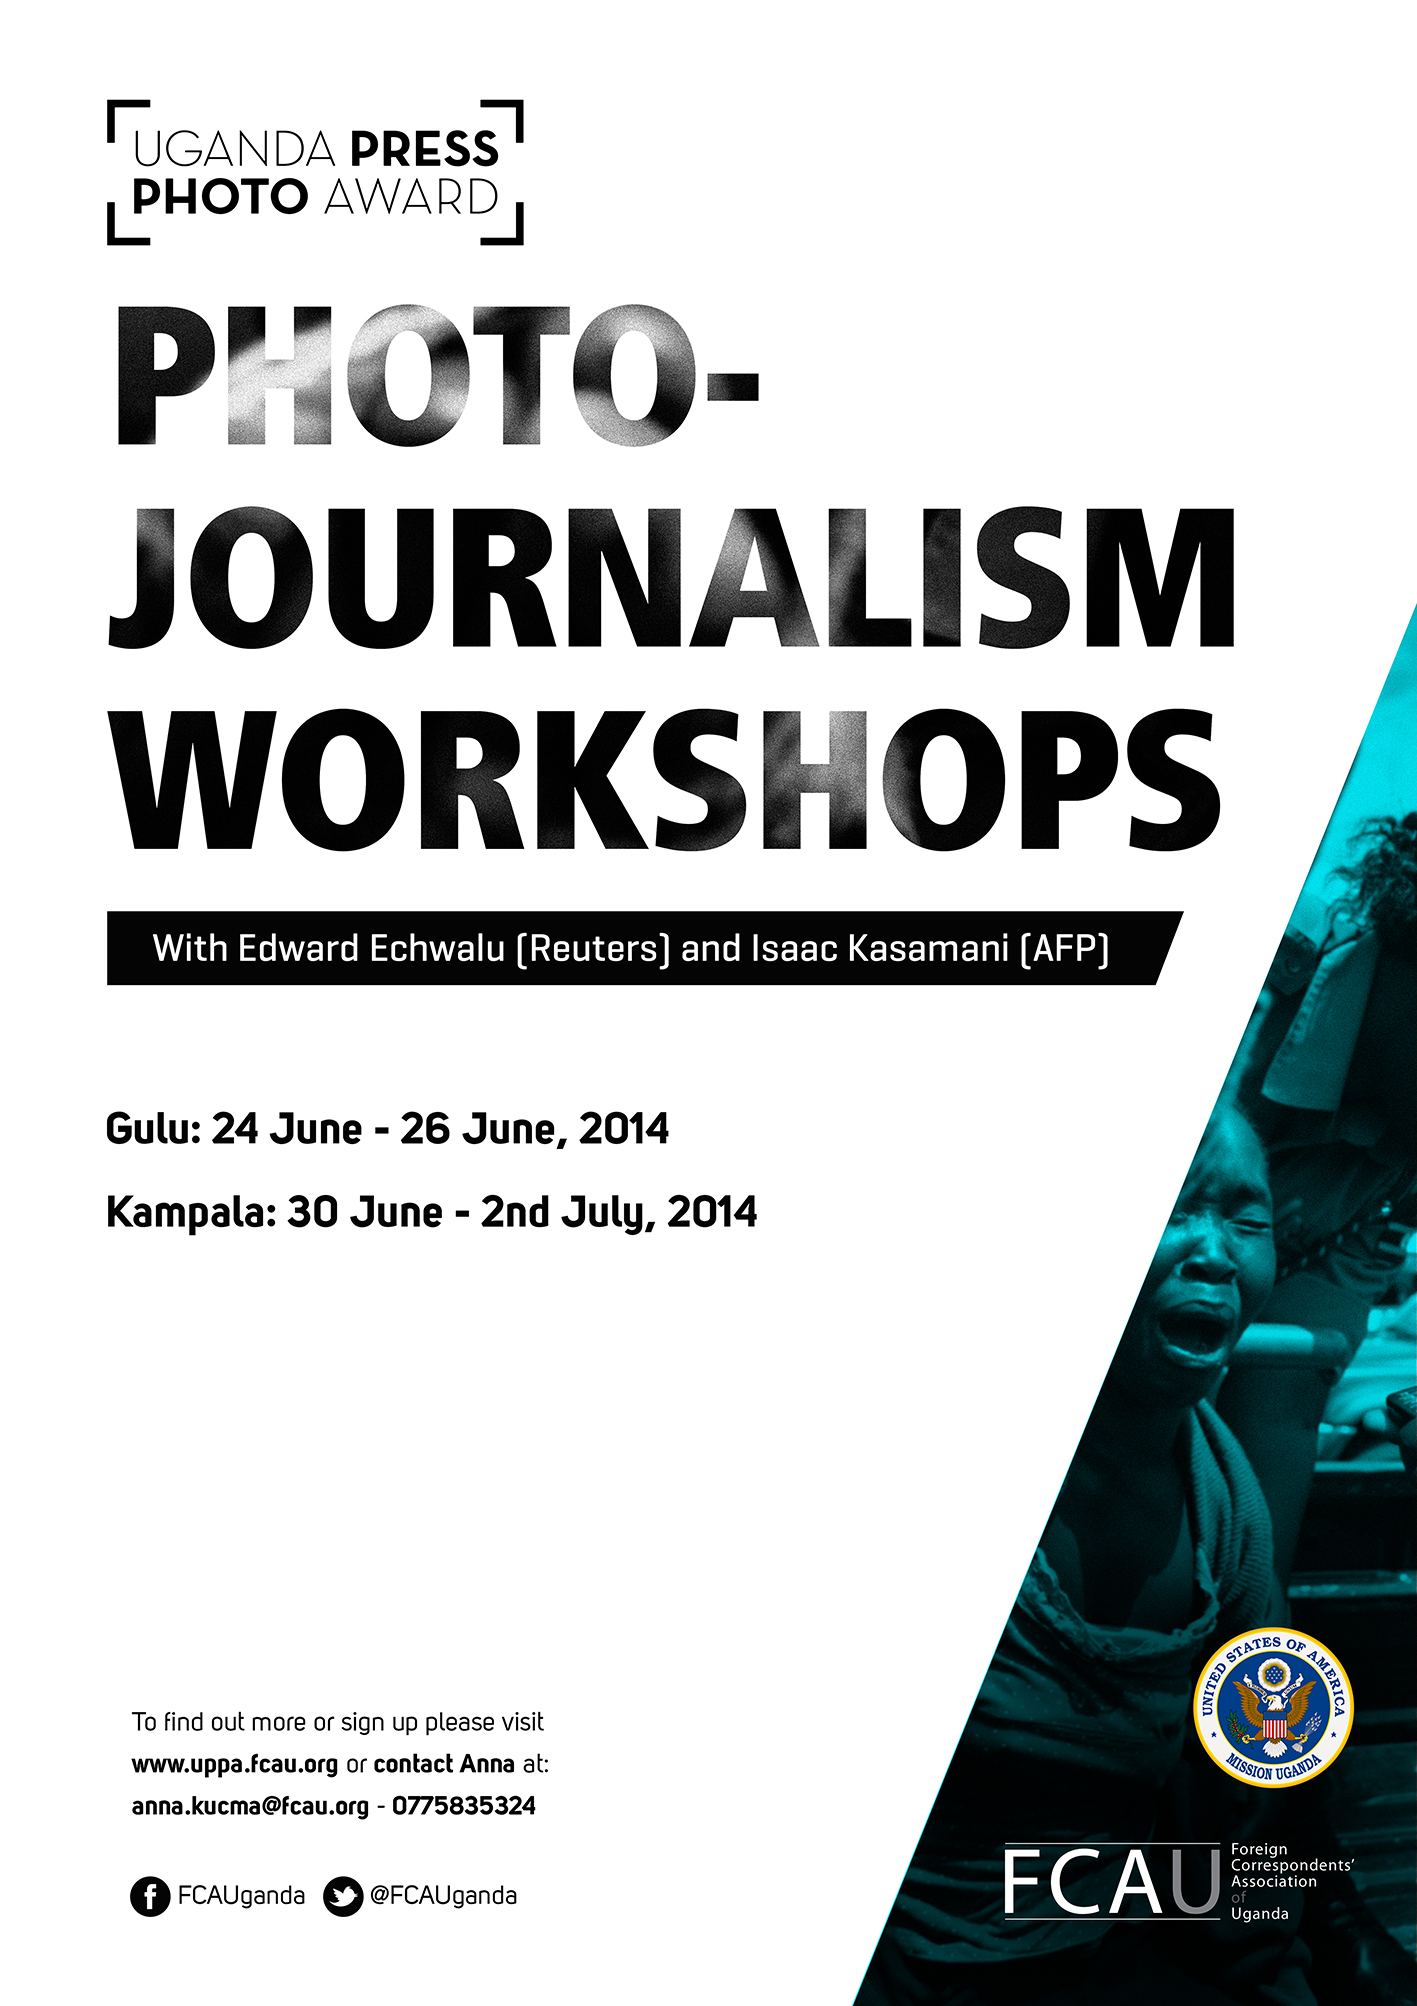 Photojournalism-Workshop-poster-V2